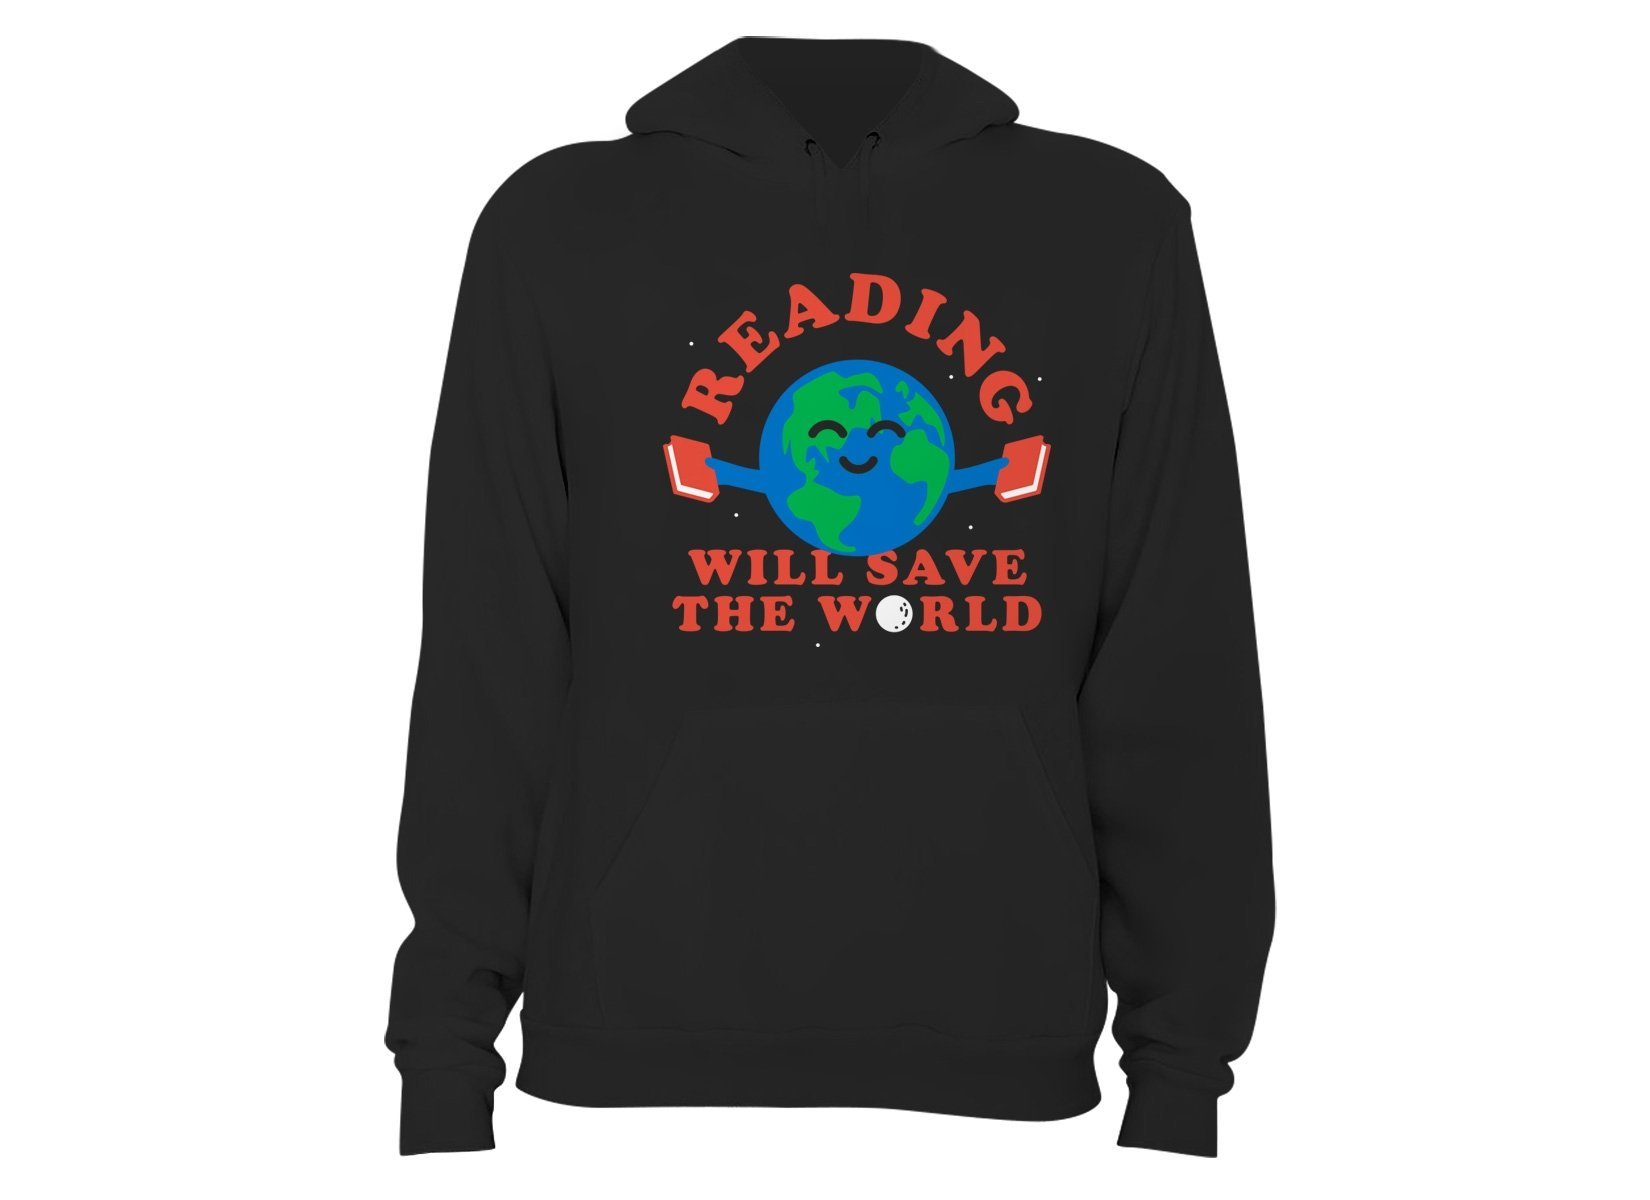 Reading Will Save The World on Hoodie